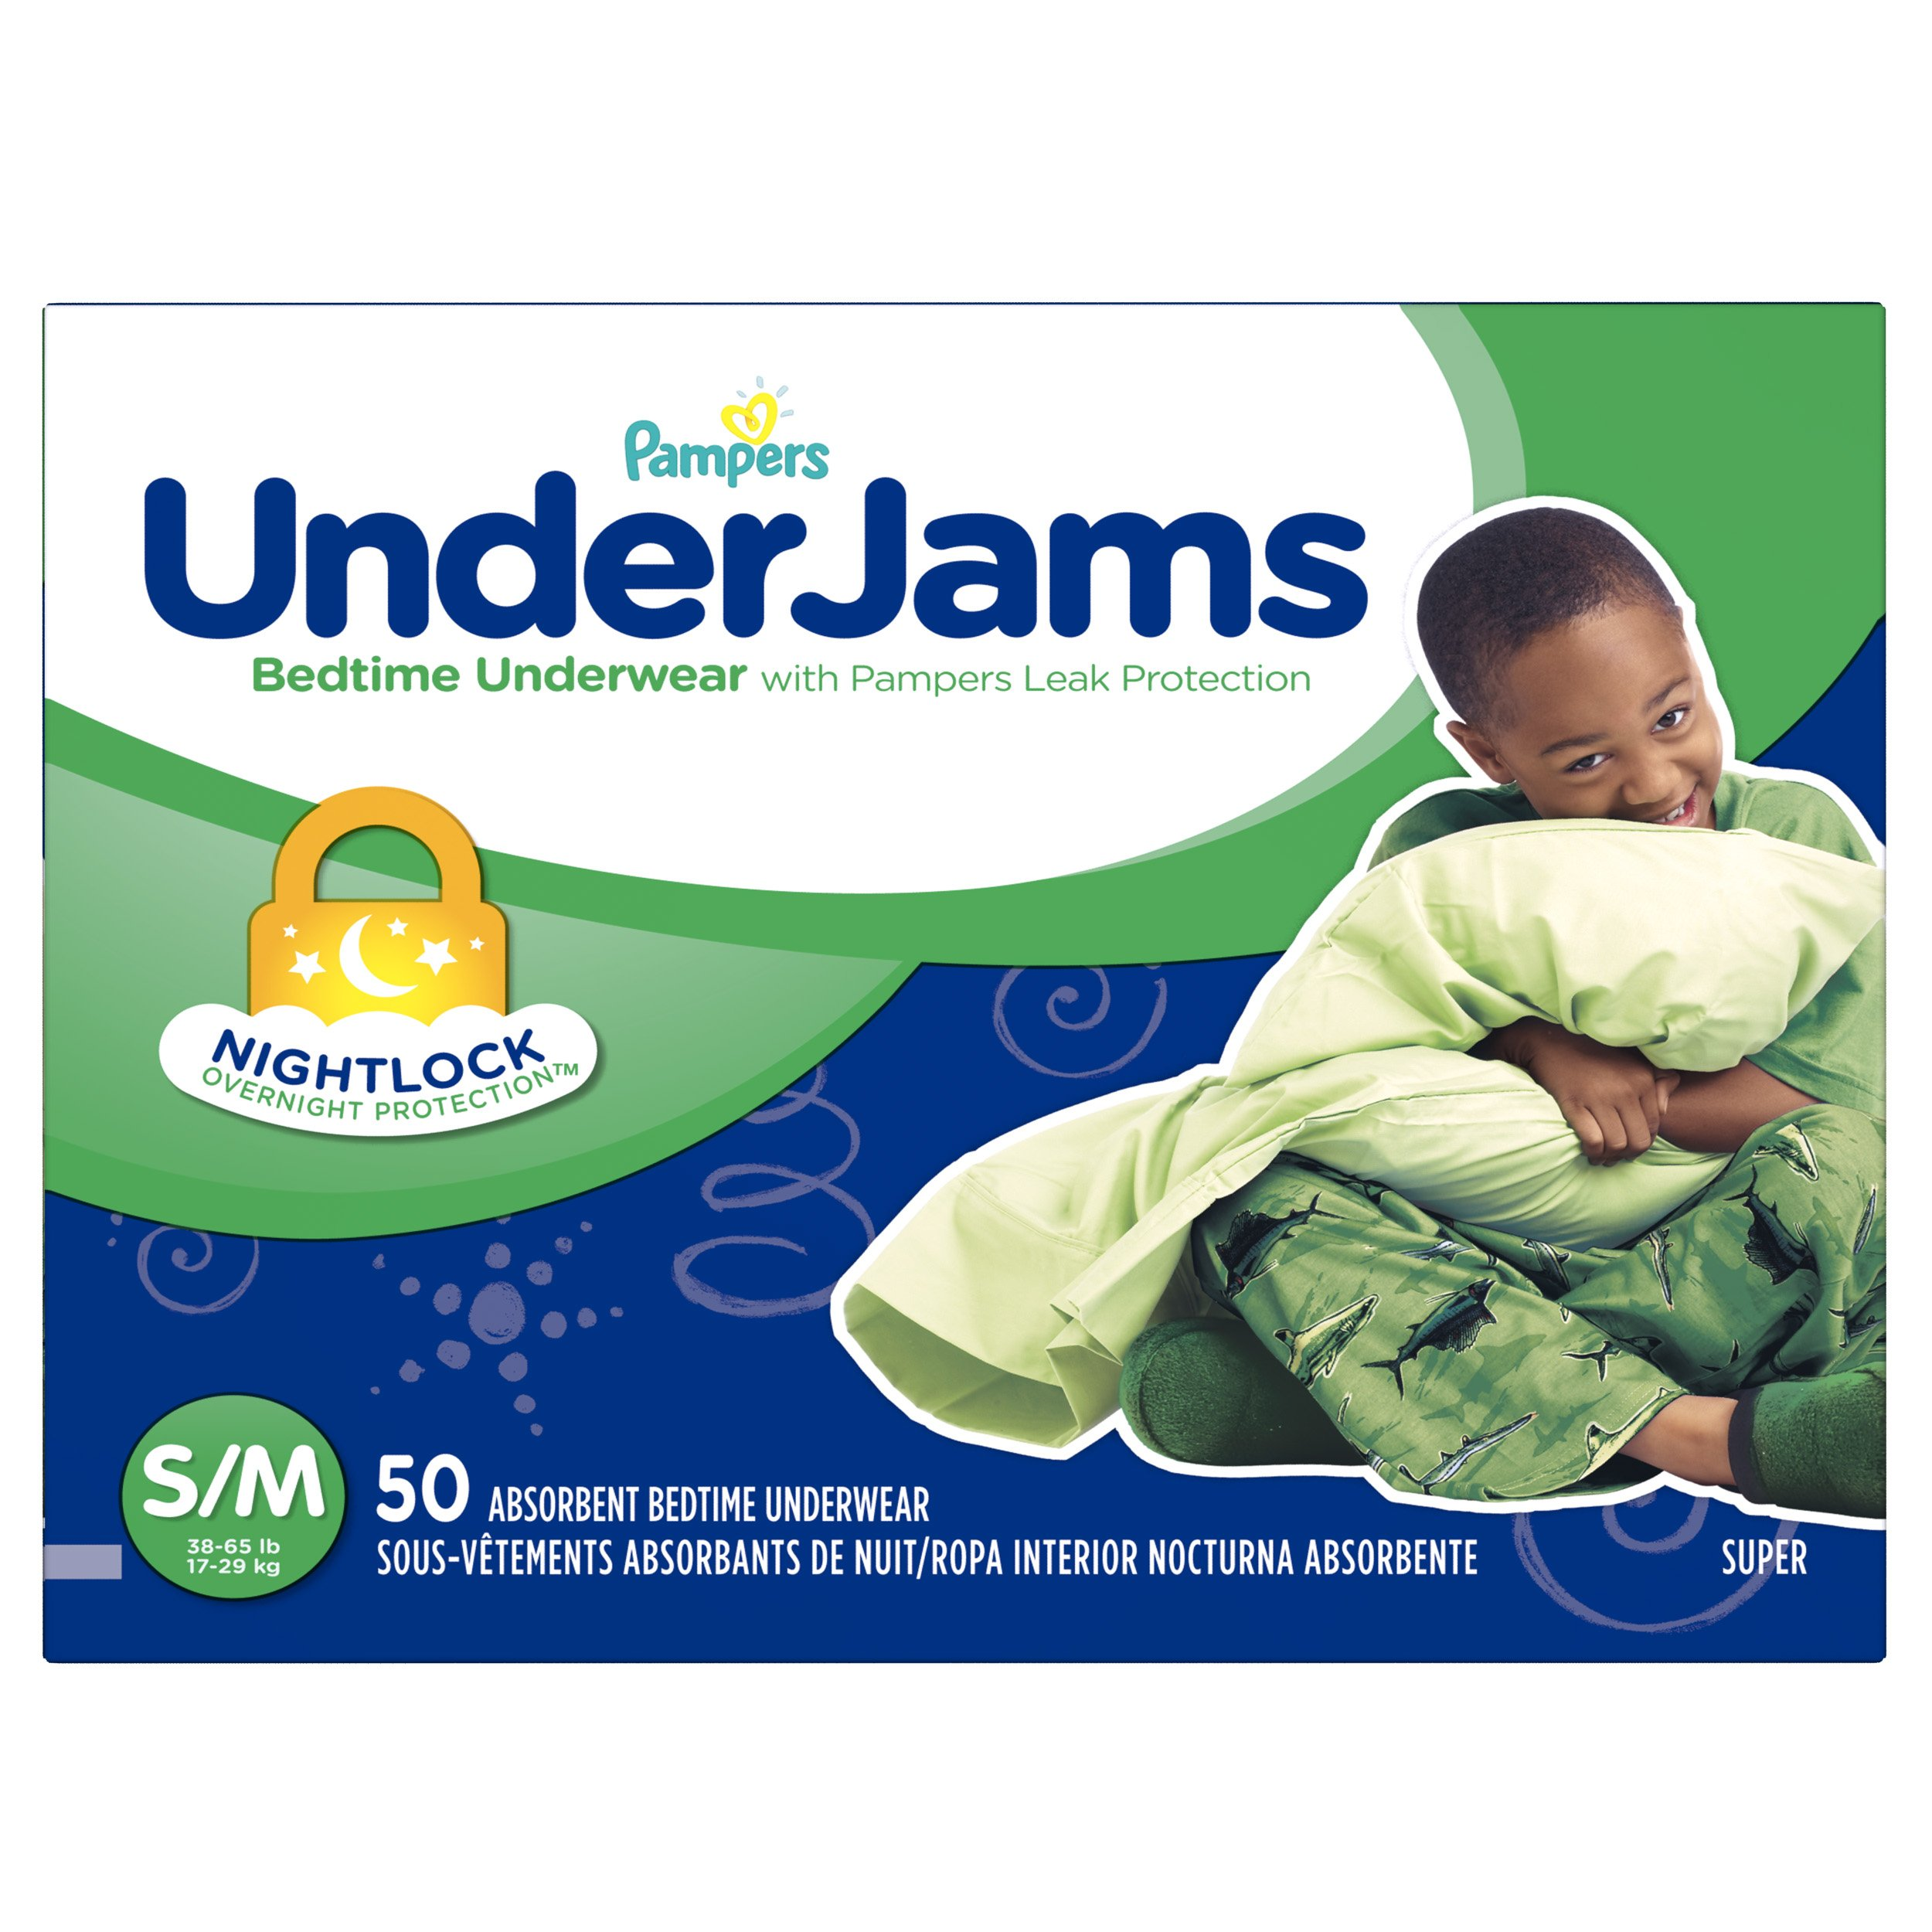 Pampers UnderJams Disposable Bedtime Underwear for Boys, Size S/M, 50 Count, Super Pack by Pampers